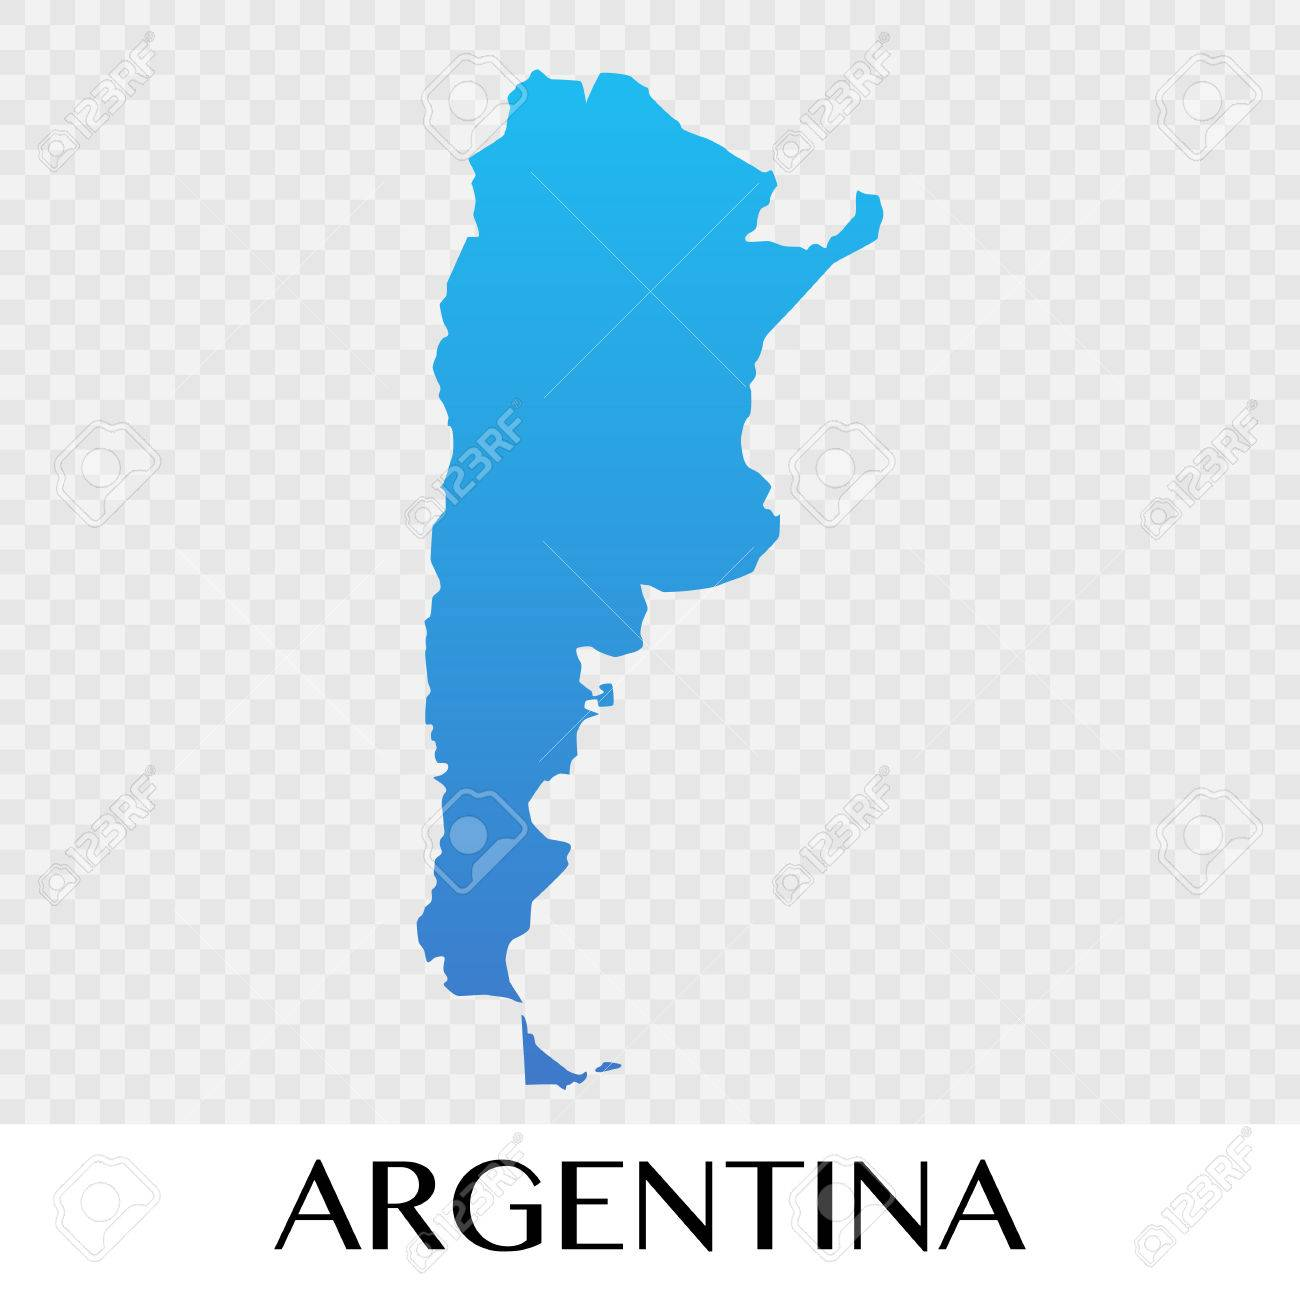 Argentina Map In South America Continent Illustration Design - Argentina map continent